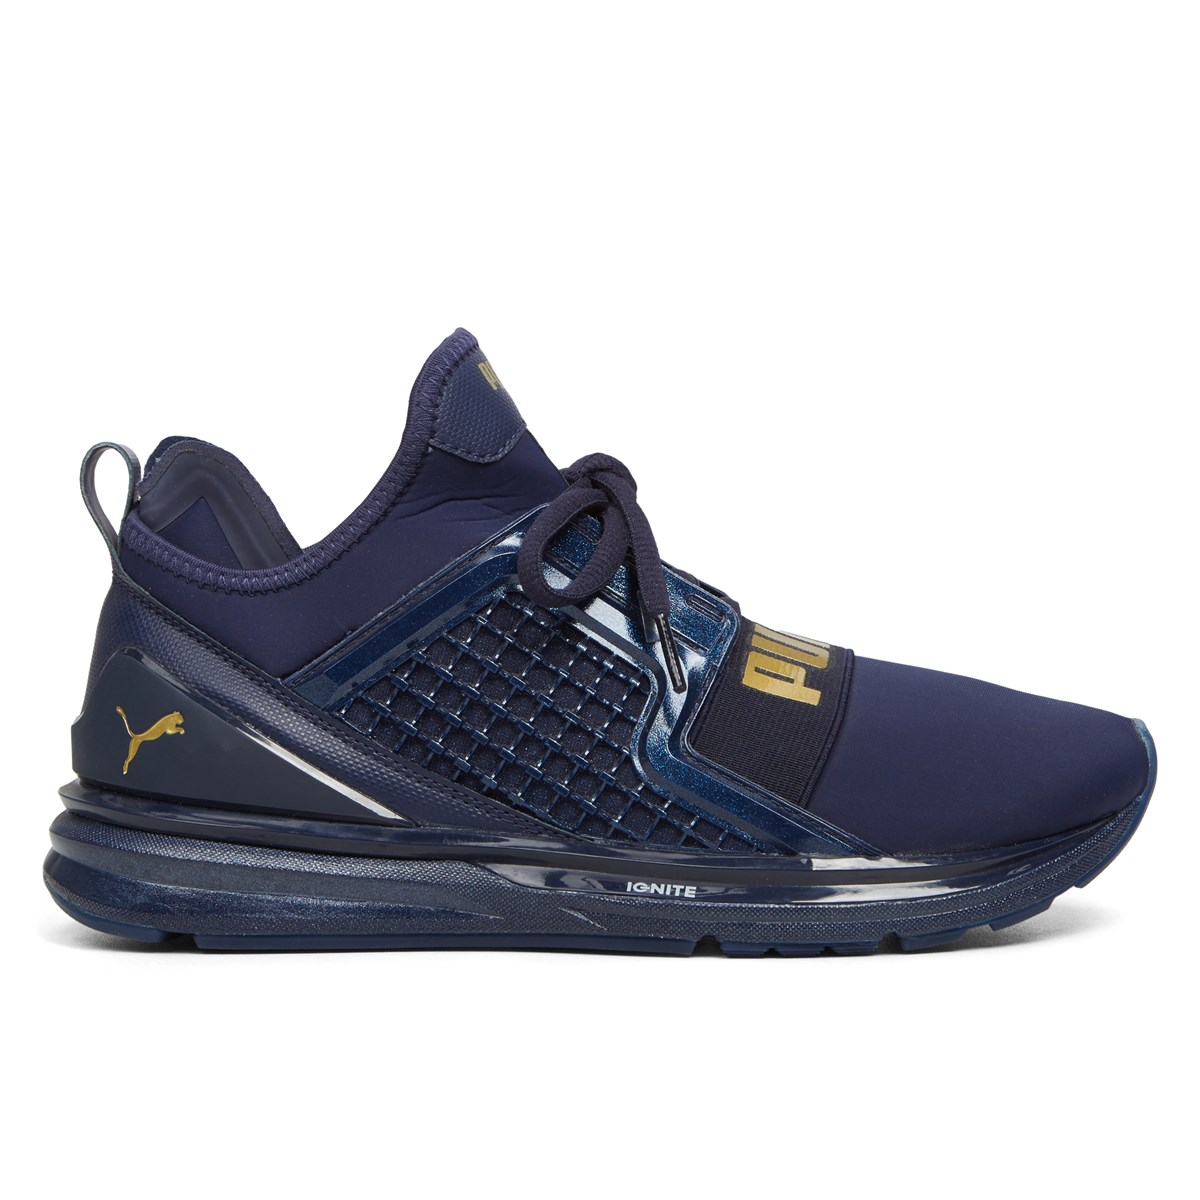 official photos 5343b ec380 Women's Ignite Limitless in Navy